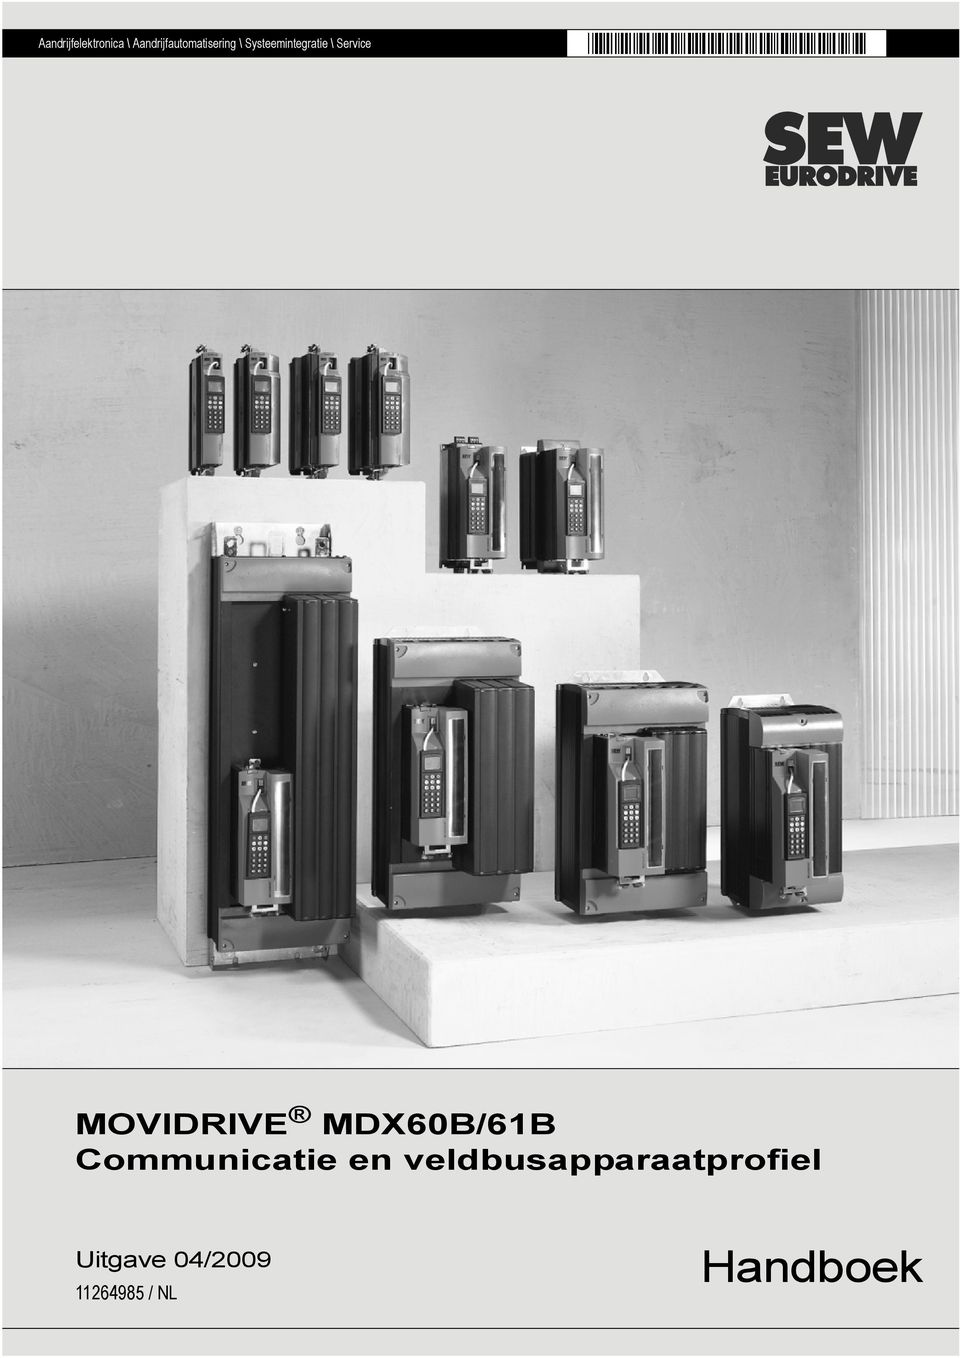 \ Service MOVIDRIVE MDX60B/61B Communicatie